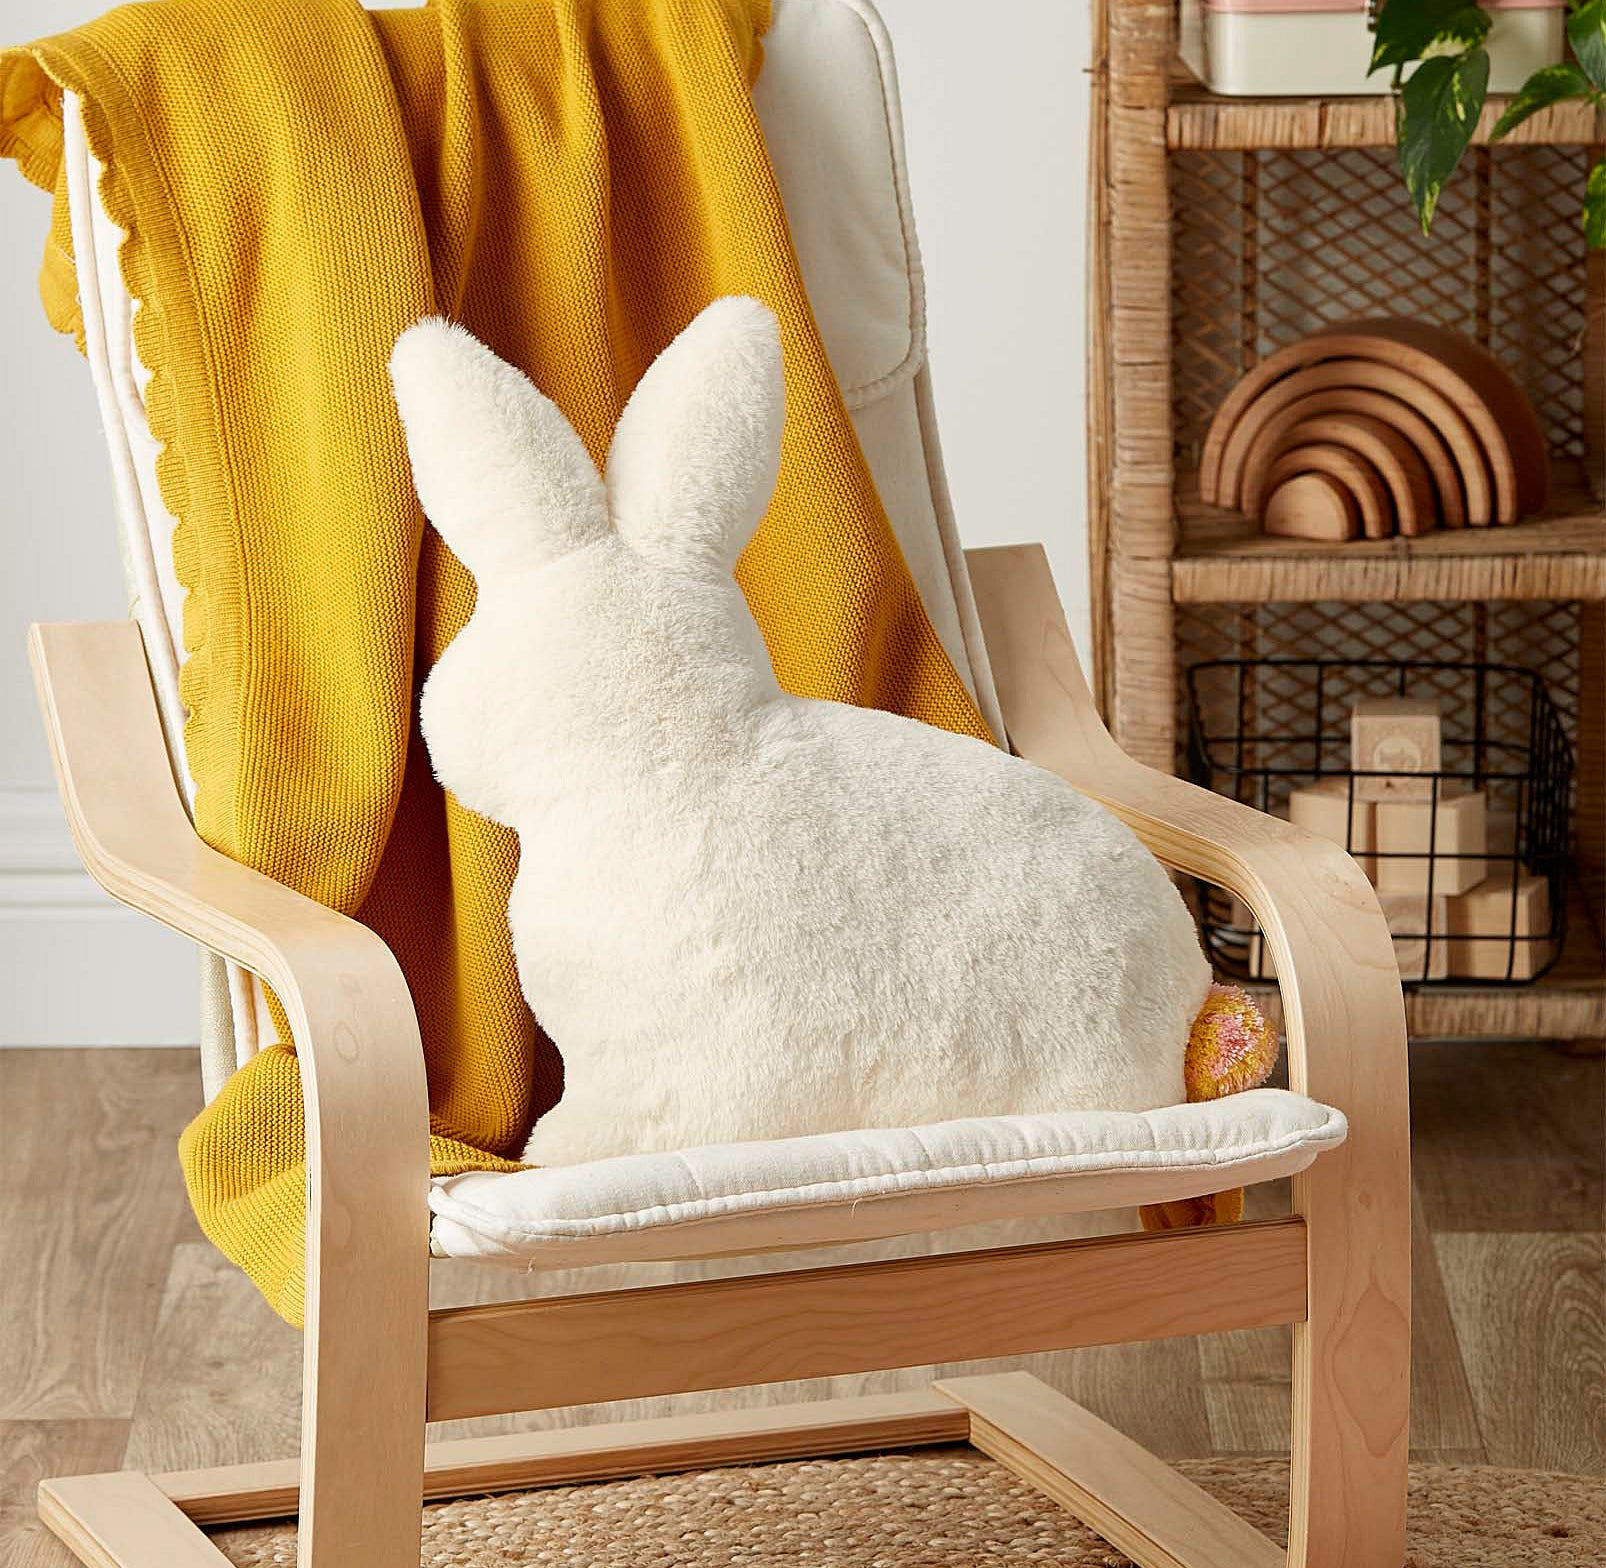 The rabbit pillow on a chair